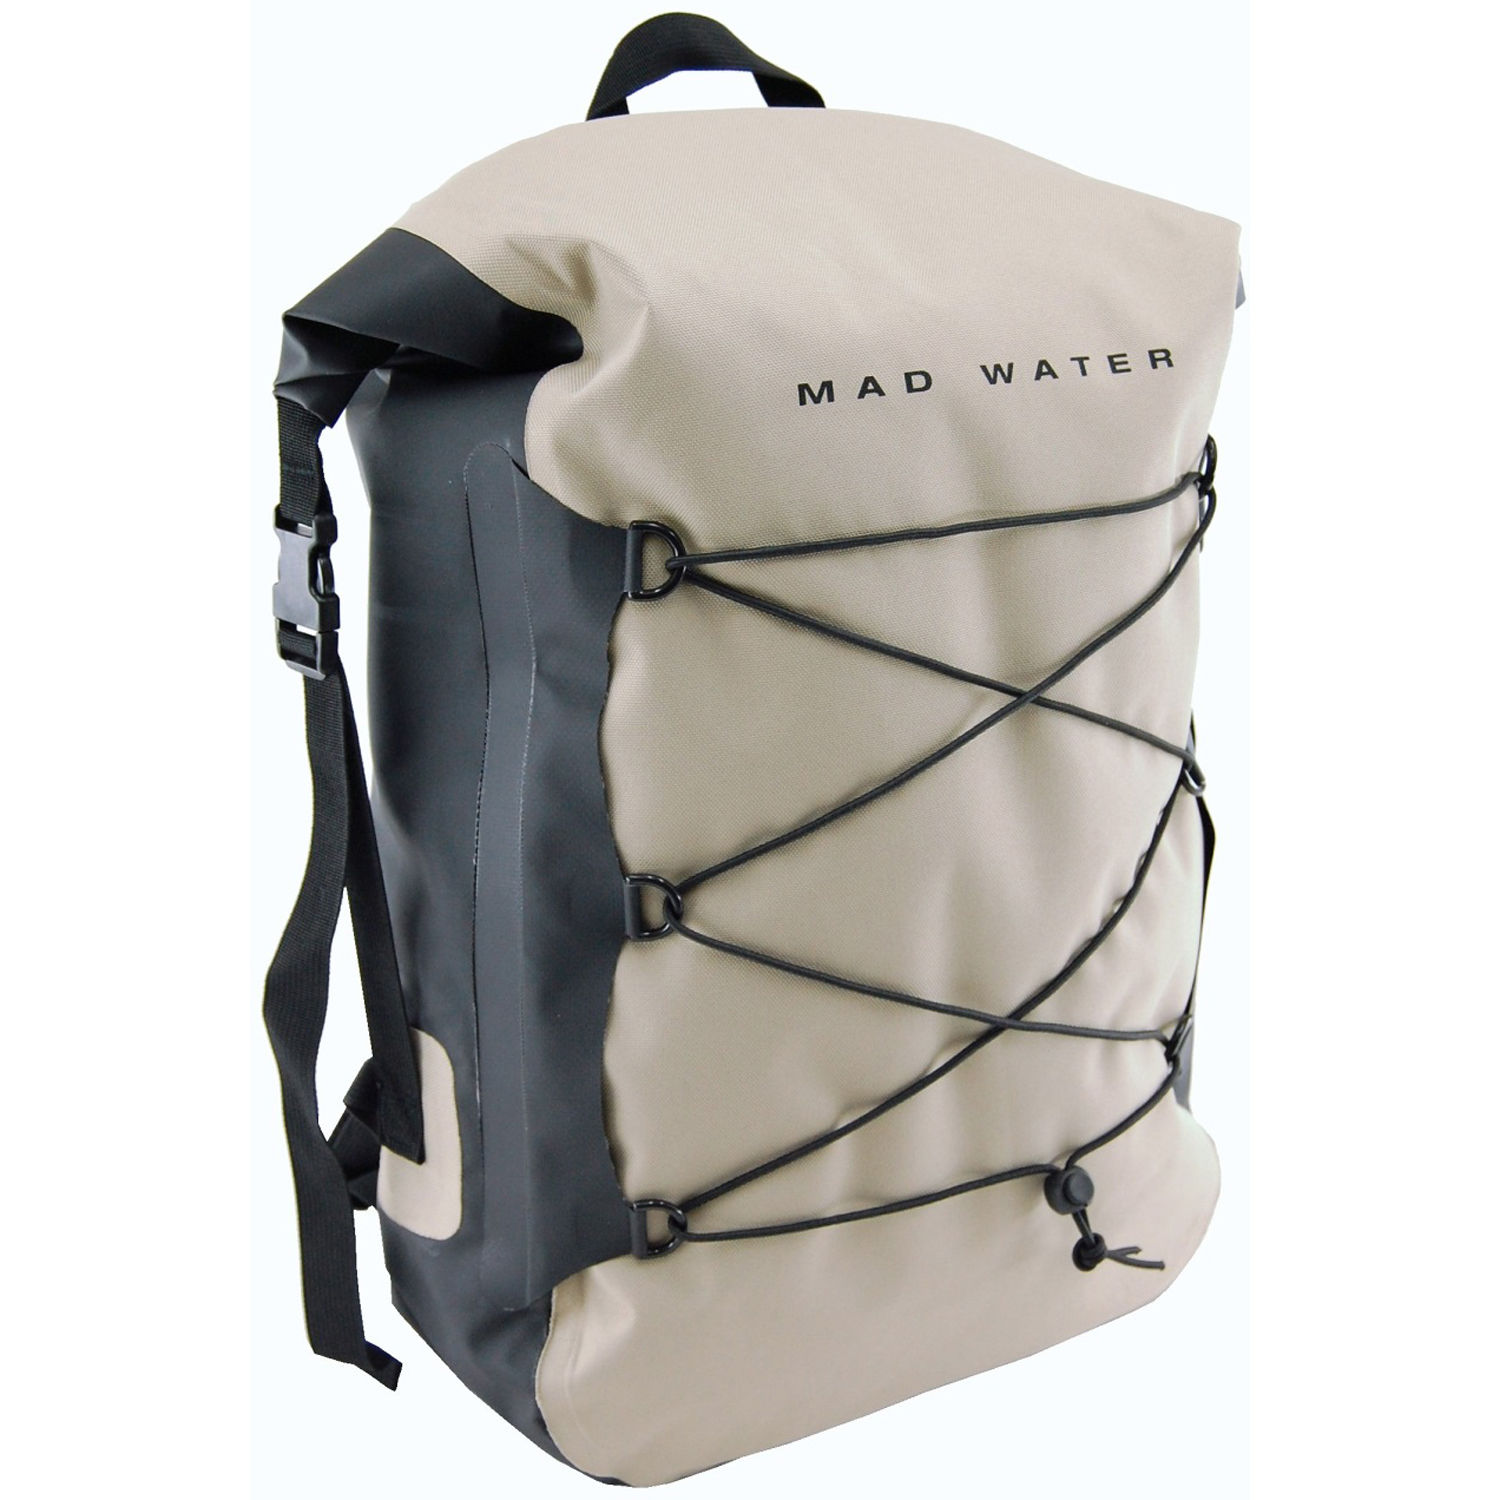 Mad Water Classic Roll-Top Waterproof Backpack M43104 B&H Photo